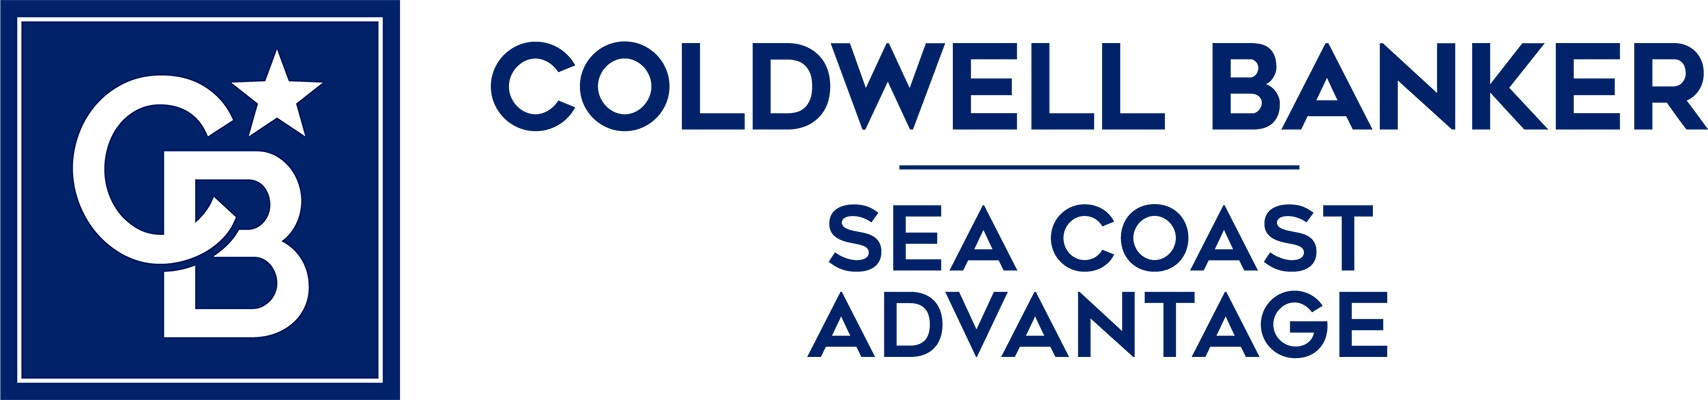 Michael Urti - Coldwell Banker Sea Coast Advantage Realty Logo